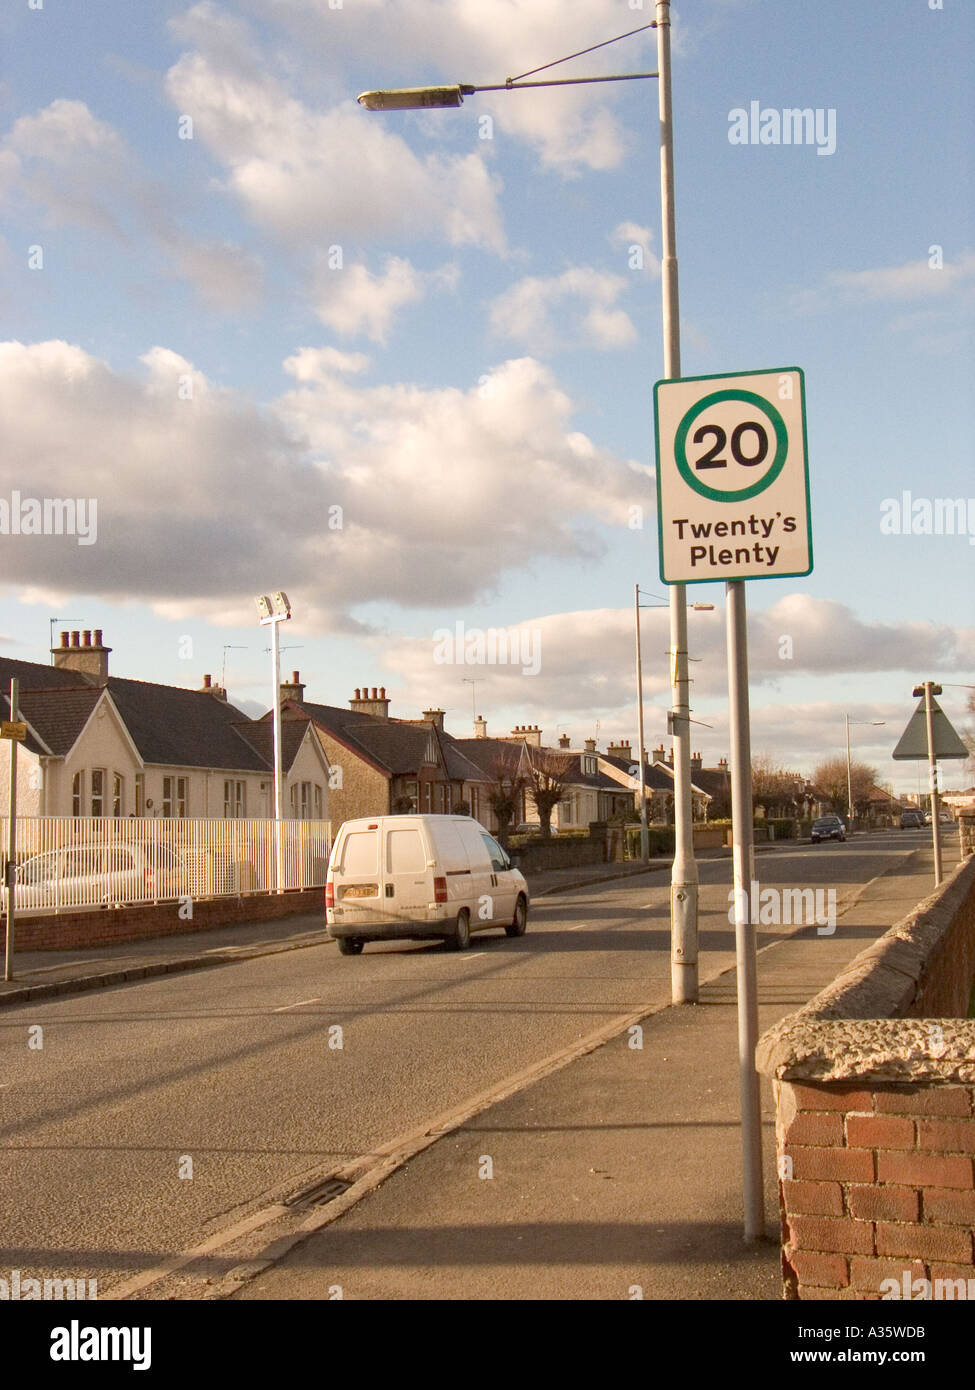 Twenty s plenty Speed limit 20 mph sign in Motherwell Scotland UK Stock Photo